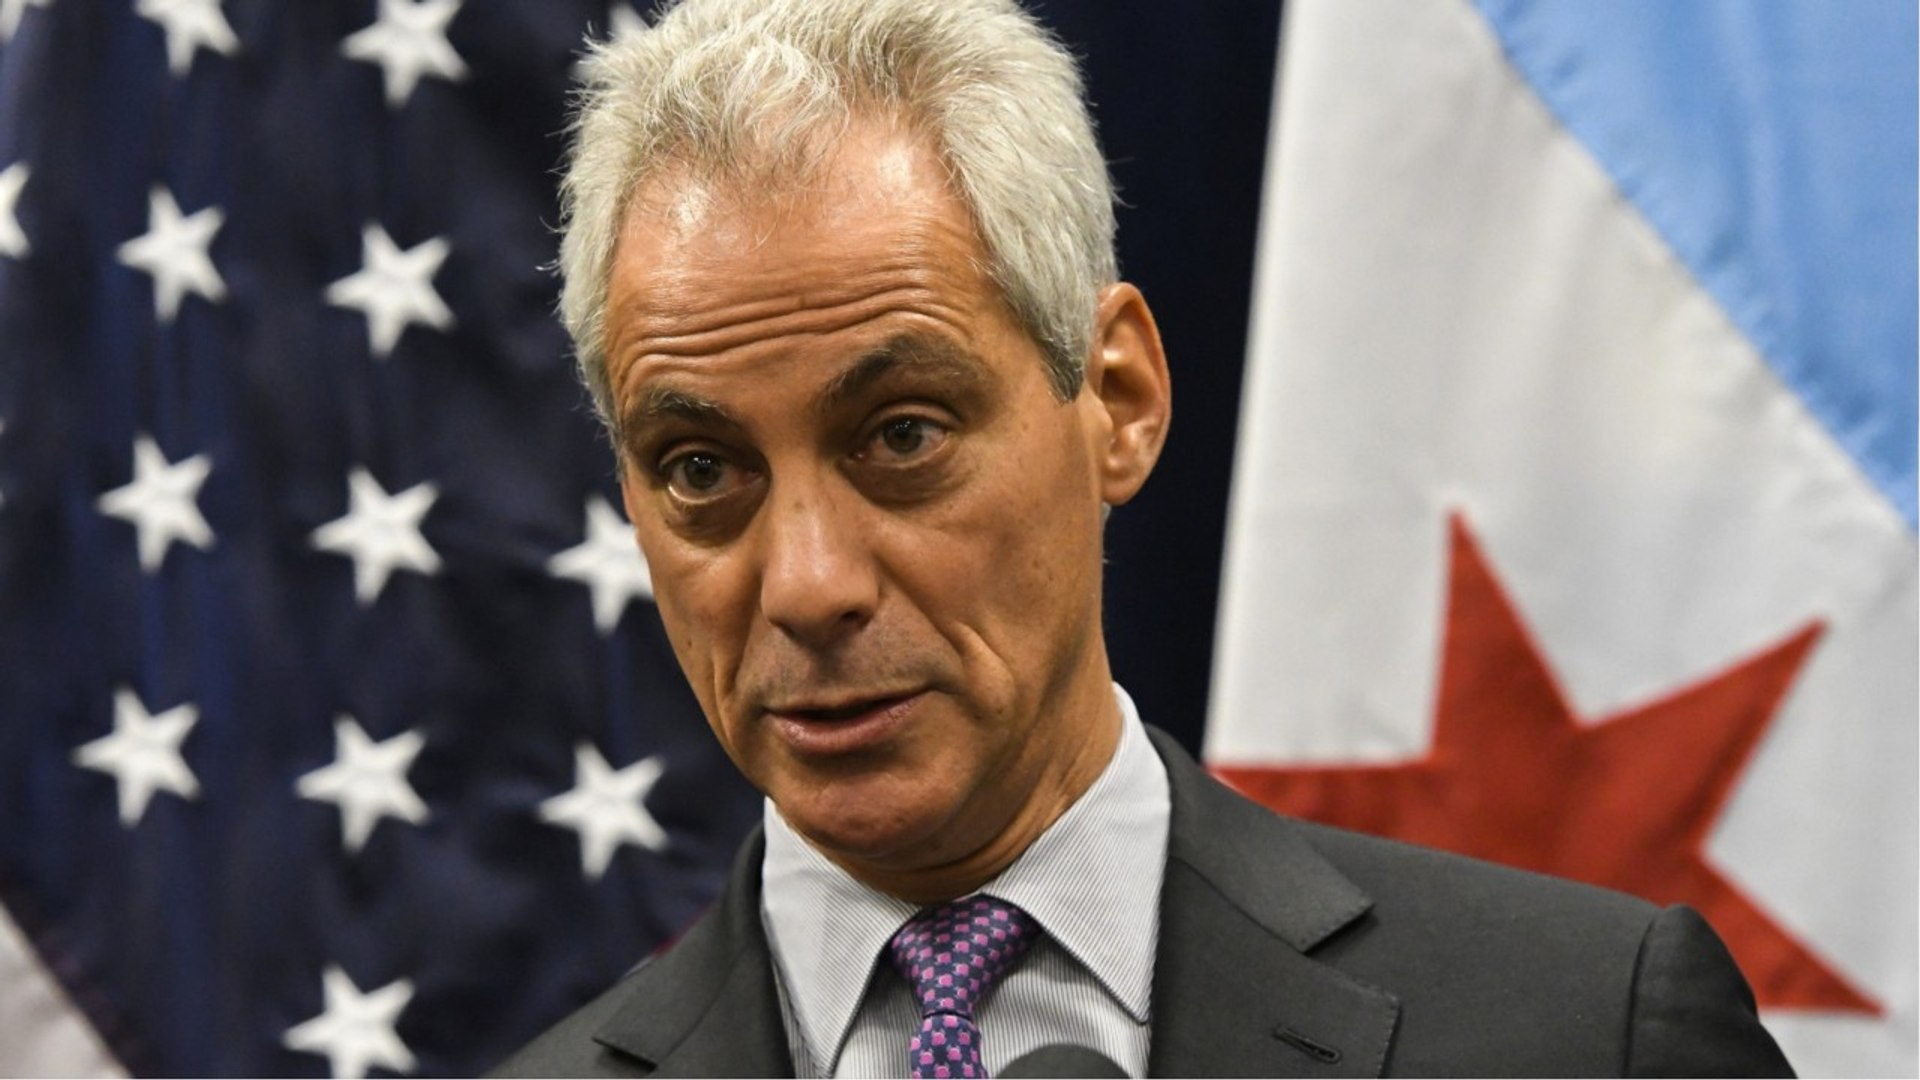 Chicago Mayor Rahm Emanuel's Private Emails To Amazon Exec Exposed In Report